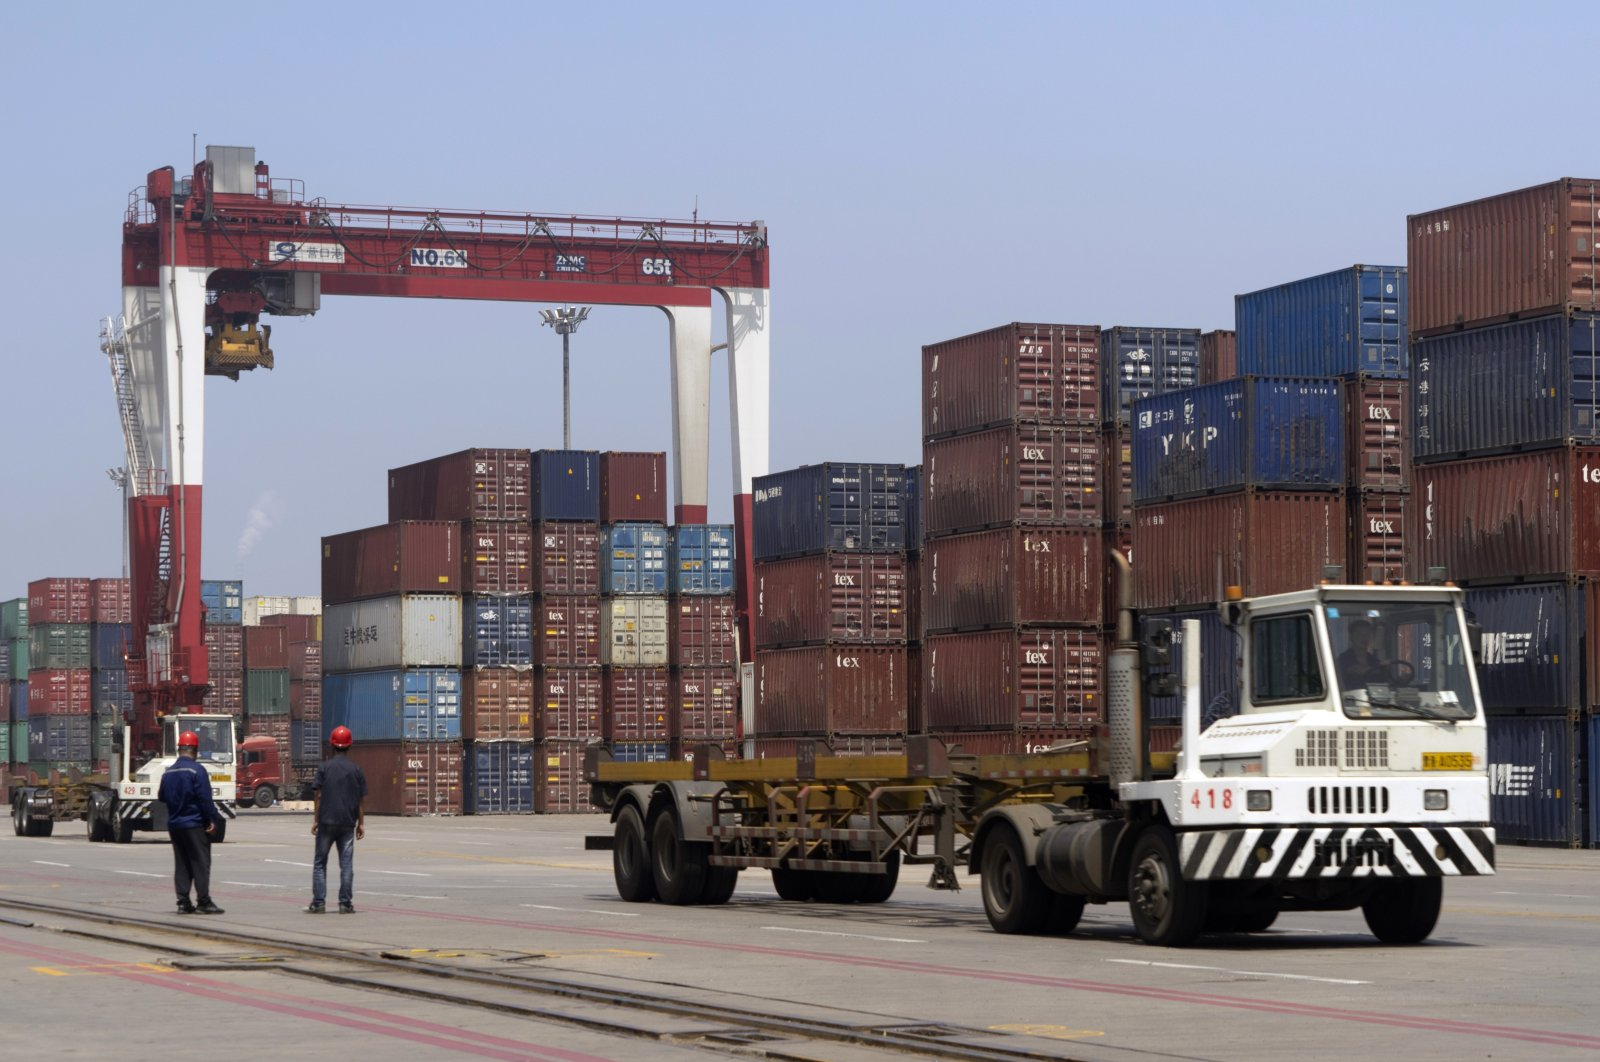 Workers watch as a truck passes by stacks of shipping containers at a port in Yingkou in northeastern China's Liaoning province, July 24, 2019. (AP Photo)